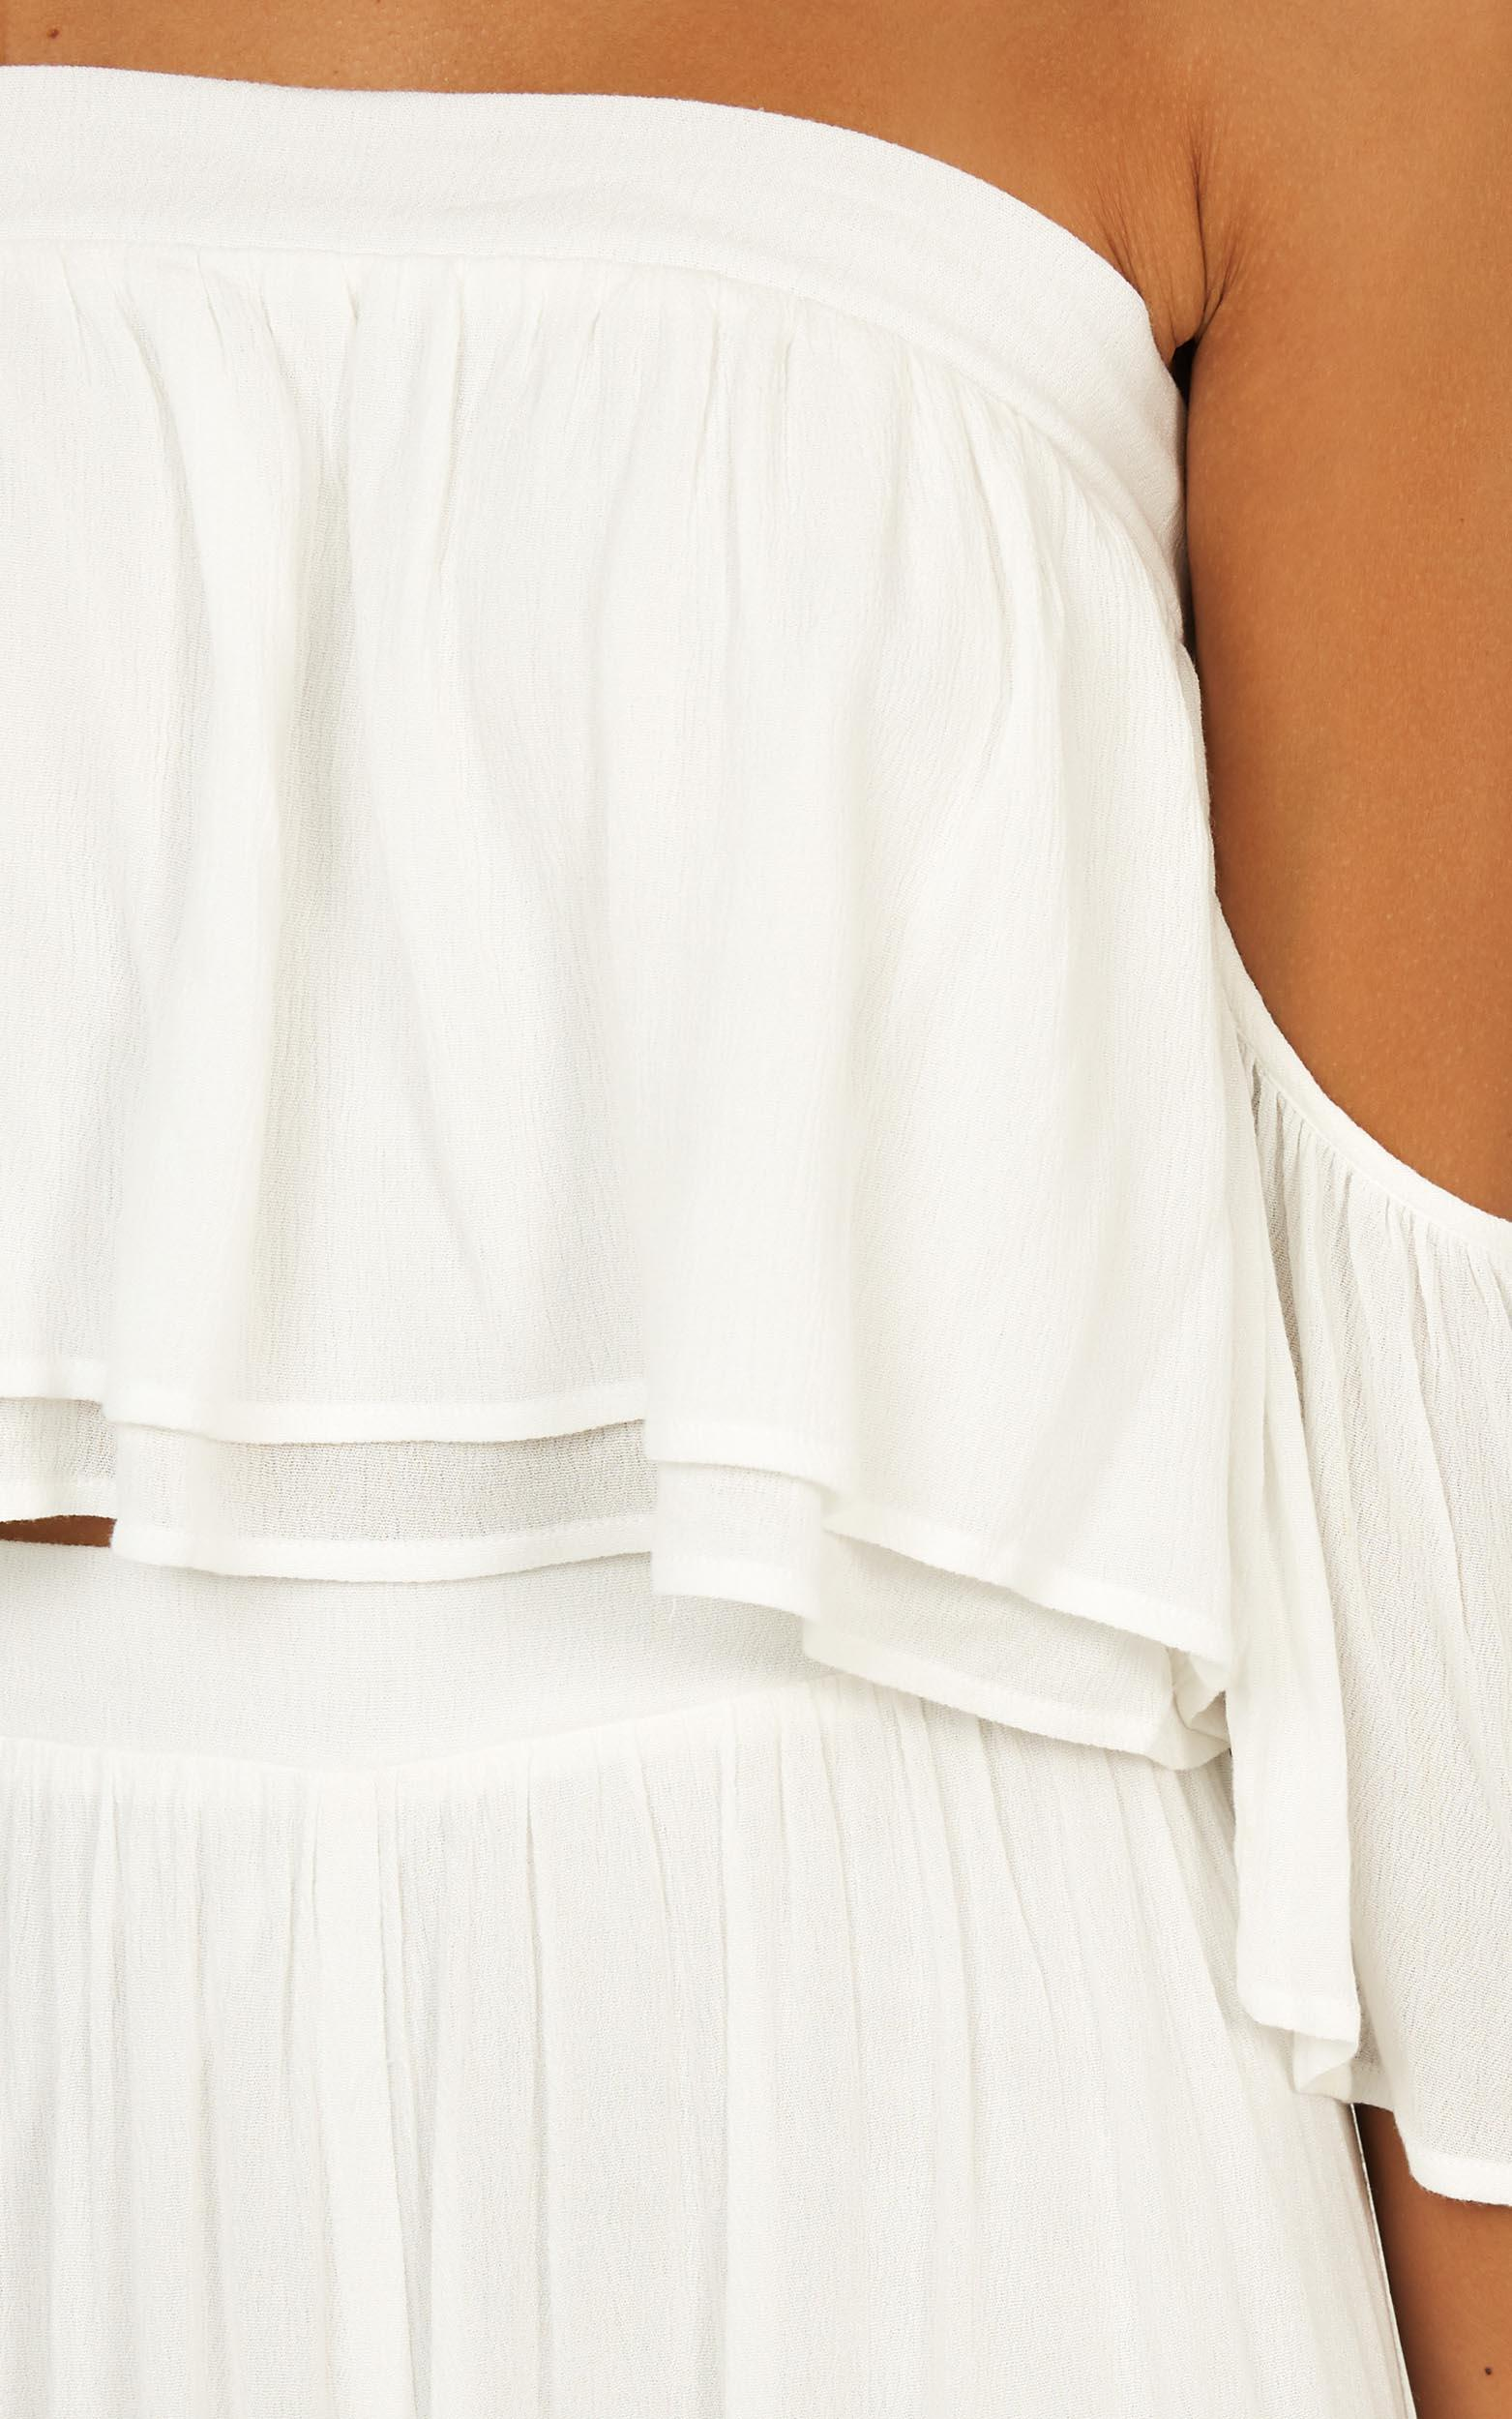 Daring Day Two Piece set in white linen look - 20 (XXXXL), White, hi-res image number null